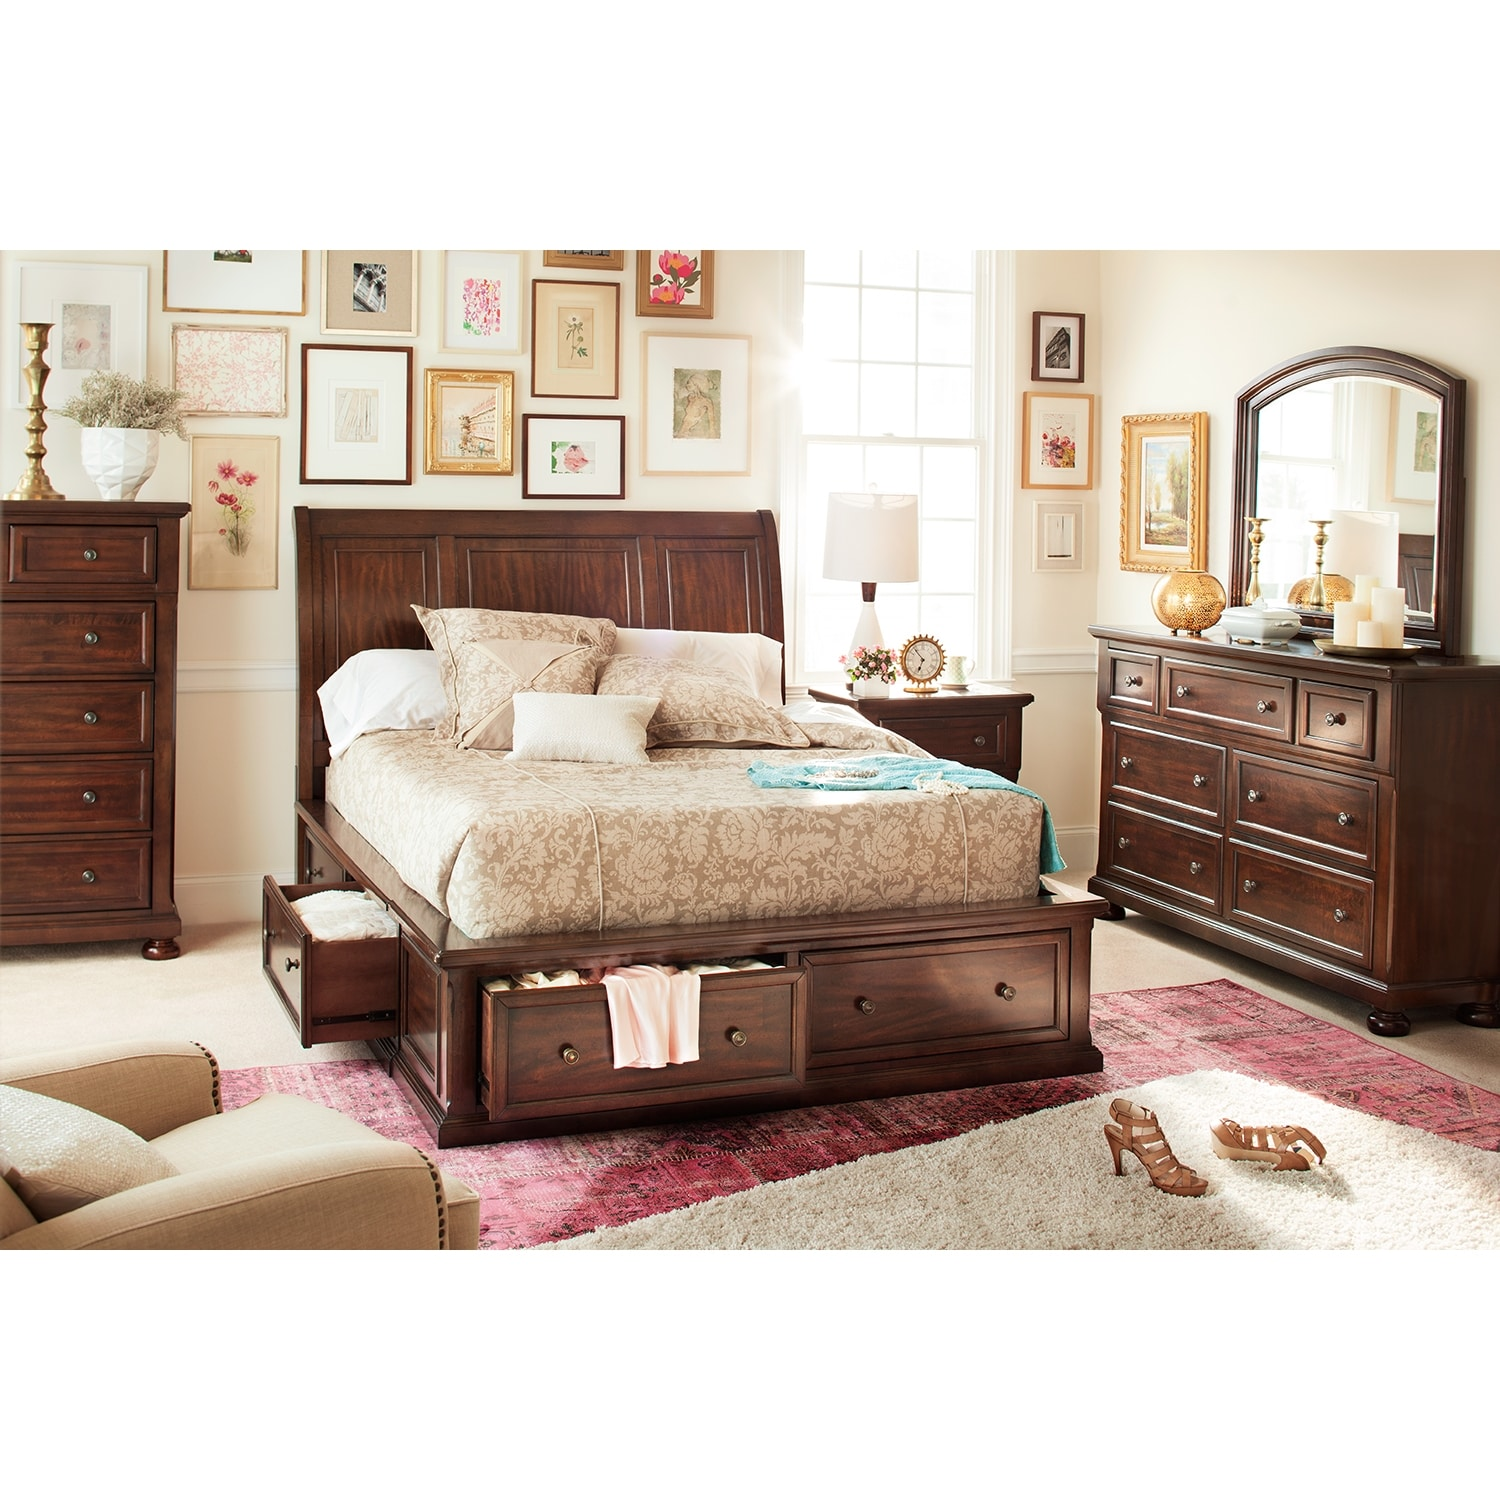 Storage Bedroom Furniture: Hanover 7-Piece Queen Storage Bedroom Set - Cherry